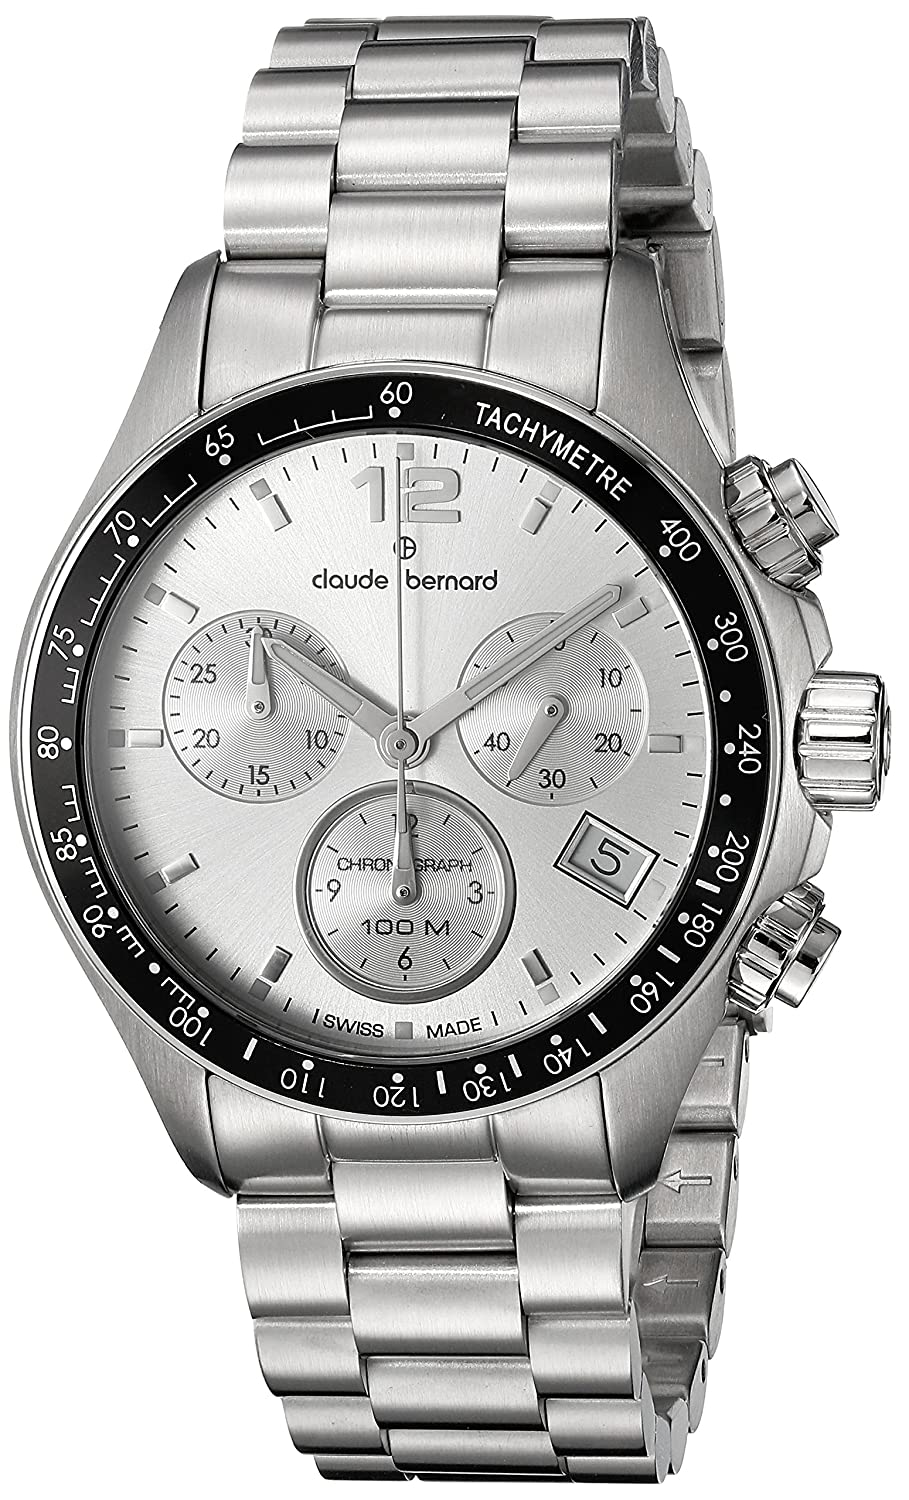 Claude Bernard Aquarider Damenuhr Chronograph 36mm 10212 3 AIN